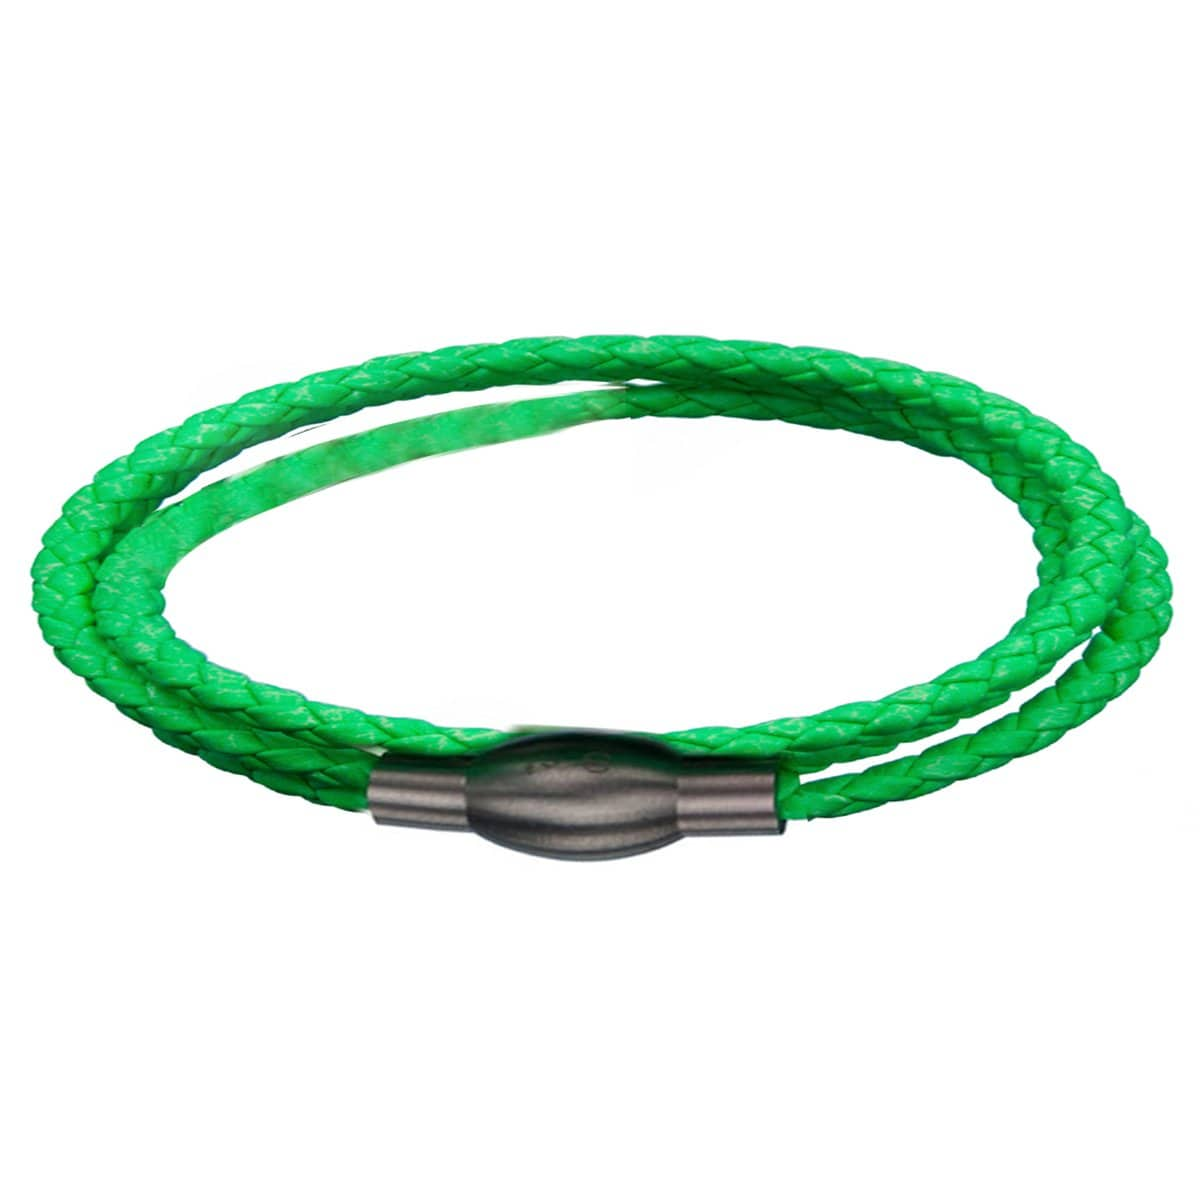 Silver Stainless Steel Neon Green Super Wrap Leather Bracelet